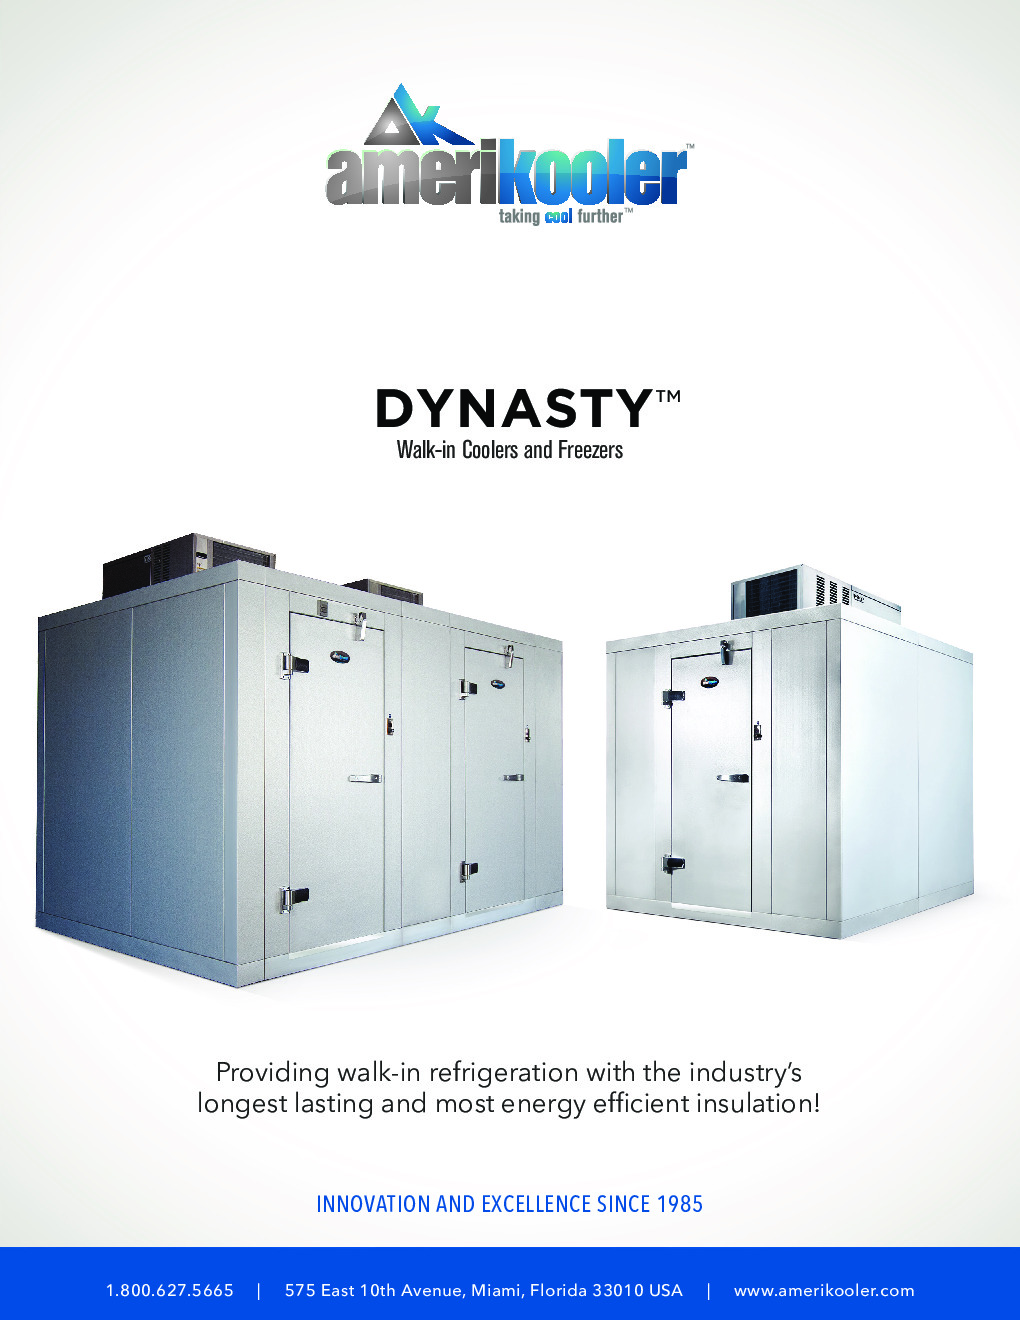 AmeriKooler DW081277N-6/6-SC 8' X 12' Walk-In Cooler, 6' L Cooler without Floor and 6' L Freezer, Self Contained